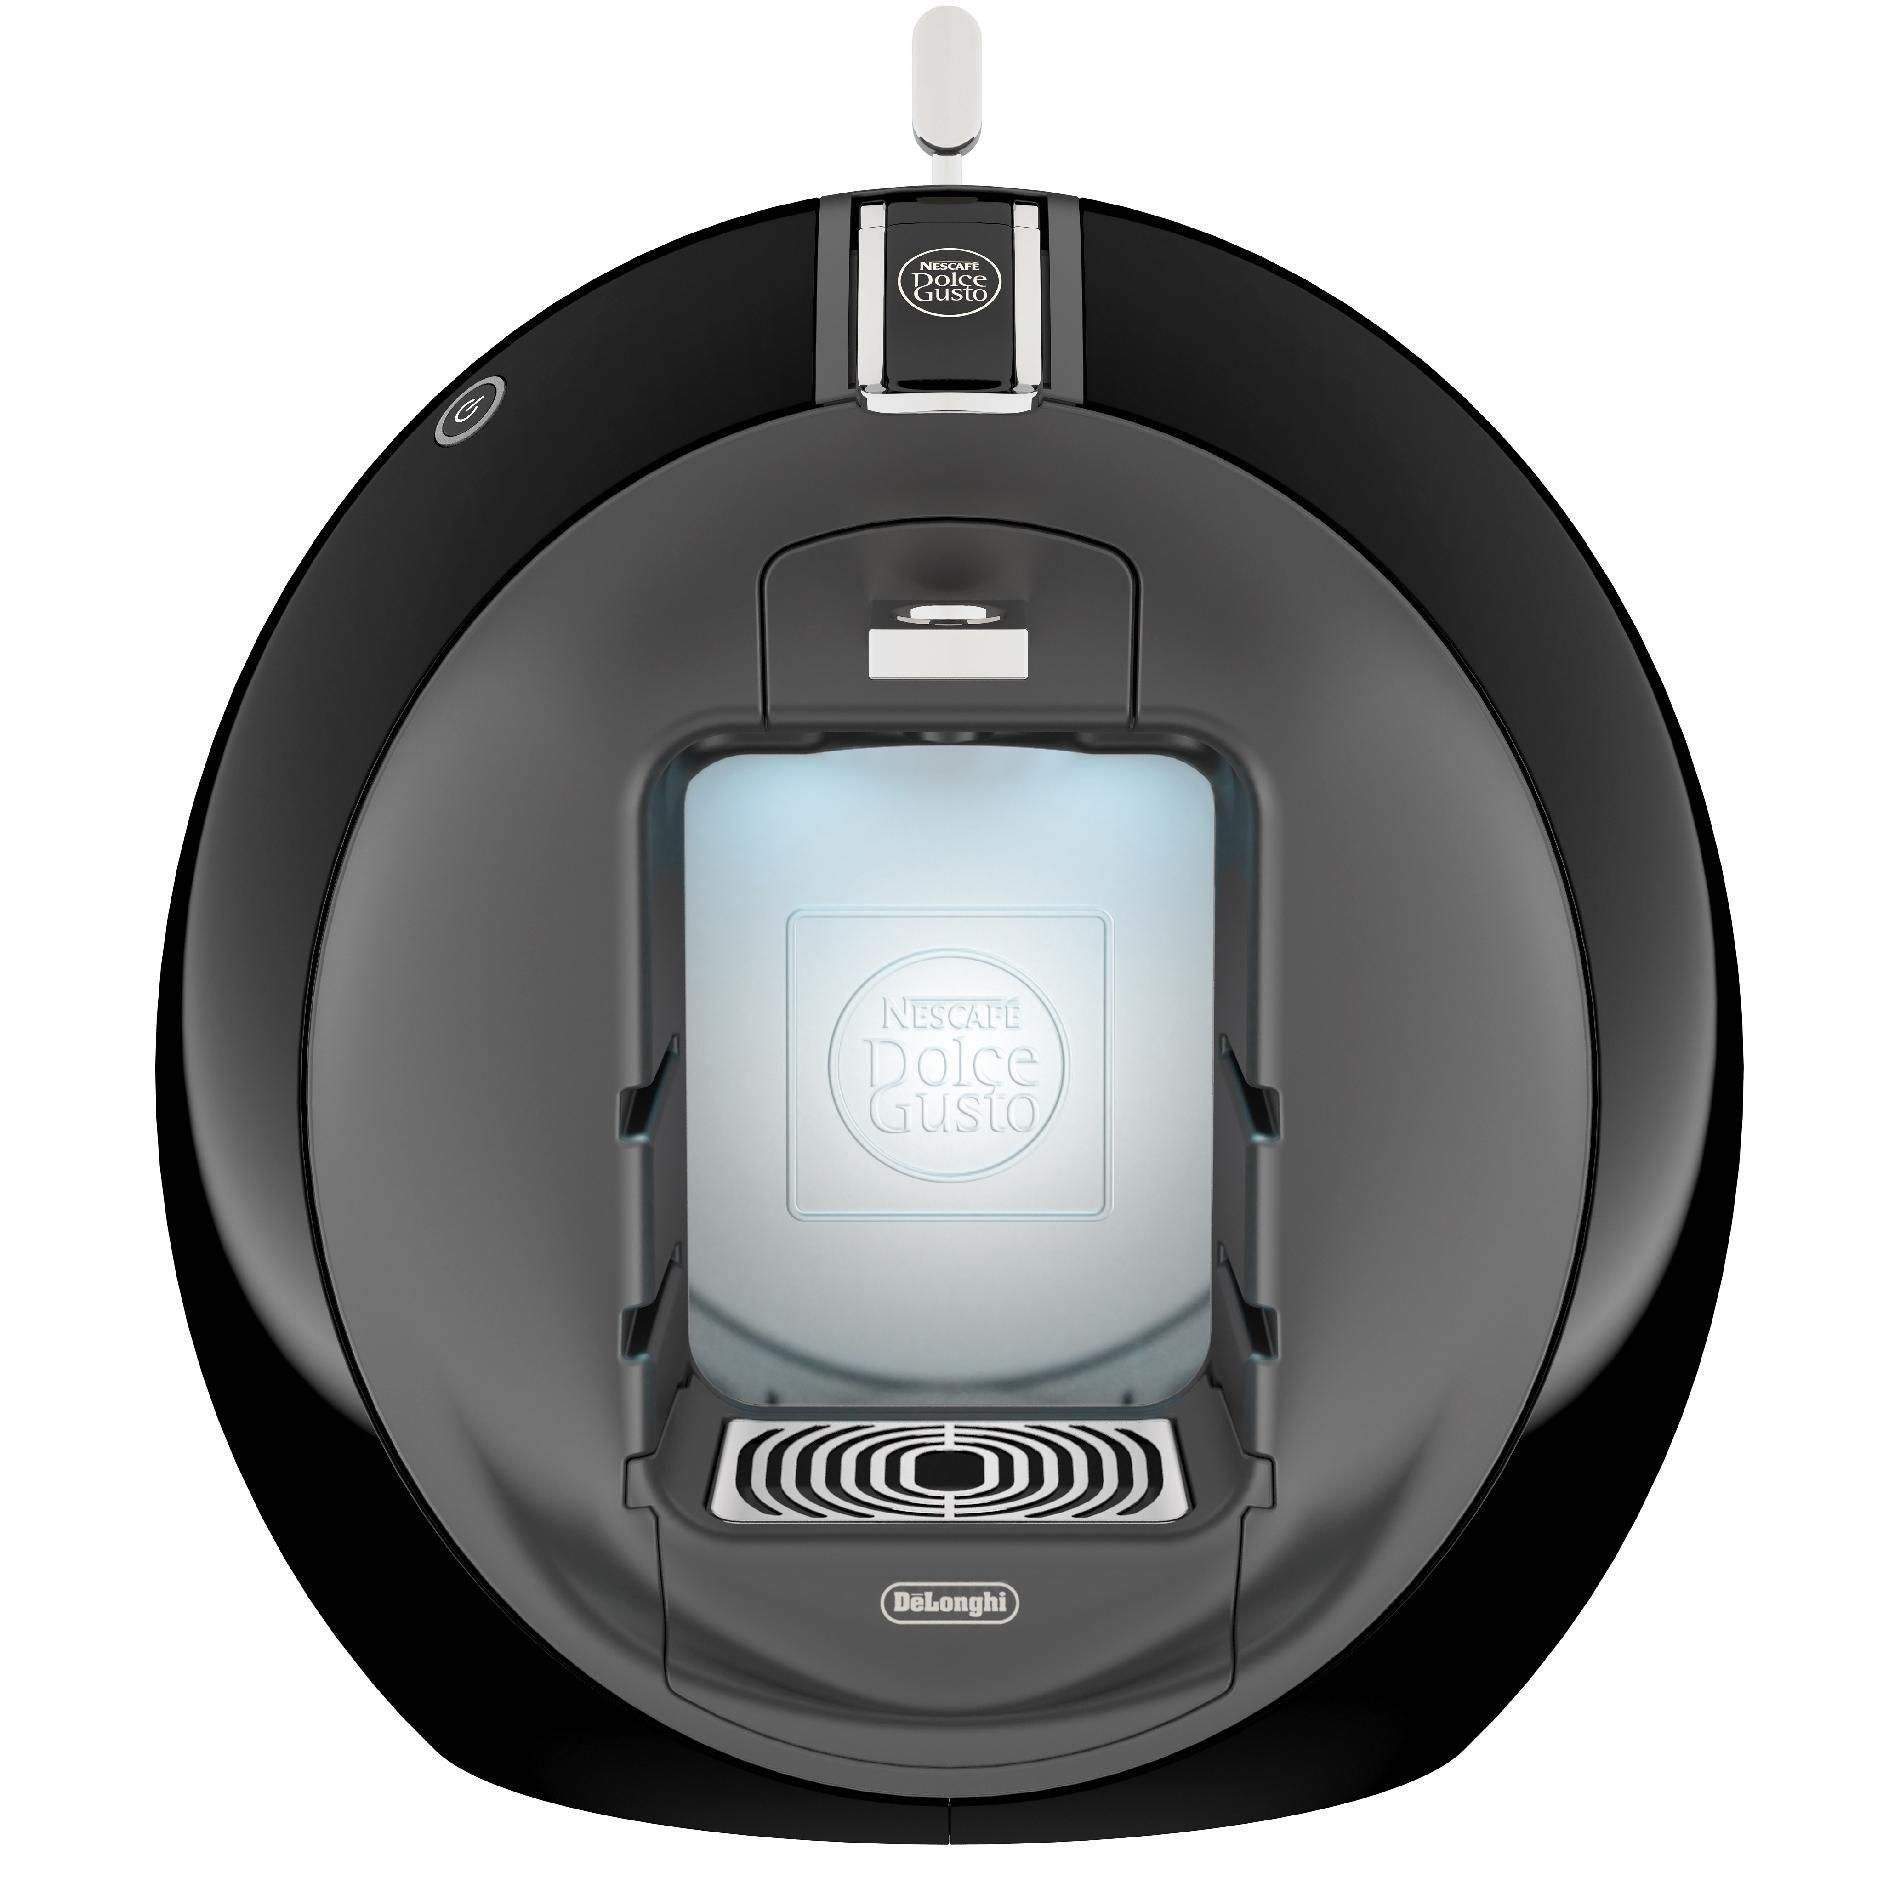 DeLONGHI DeLonghi EDG600B Nescafe Dolce Gusto Circolo Single Serve Coffeemaker